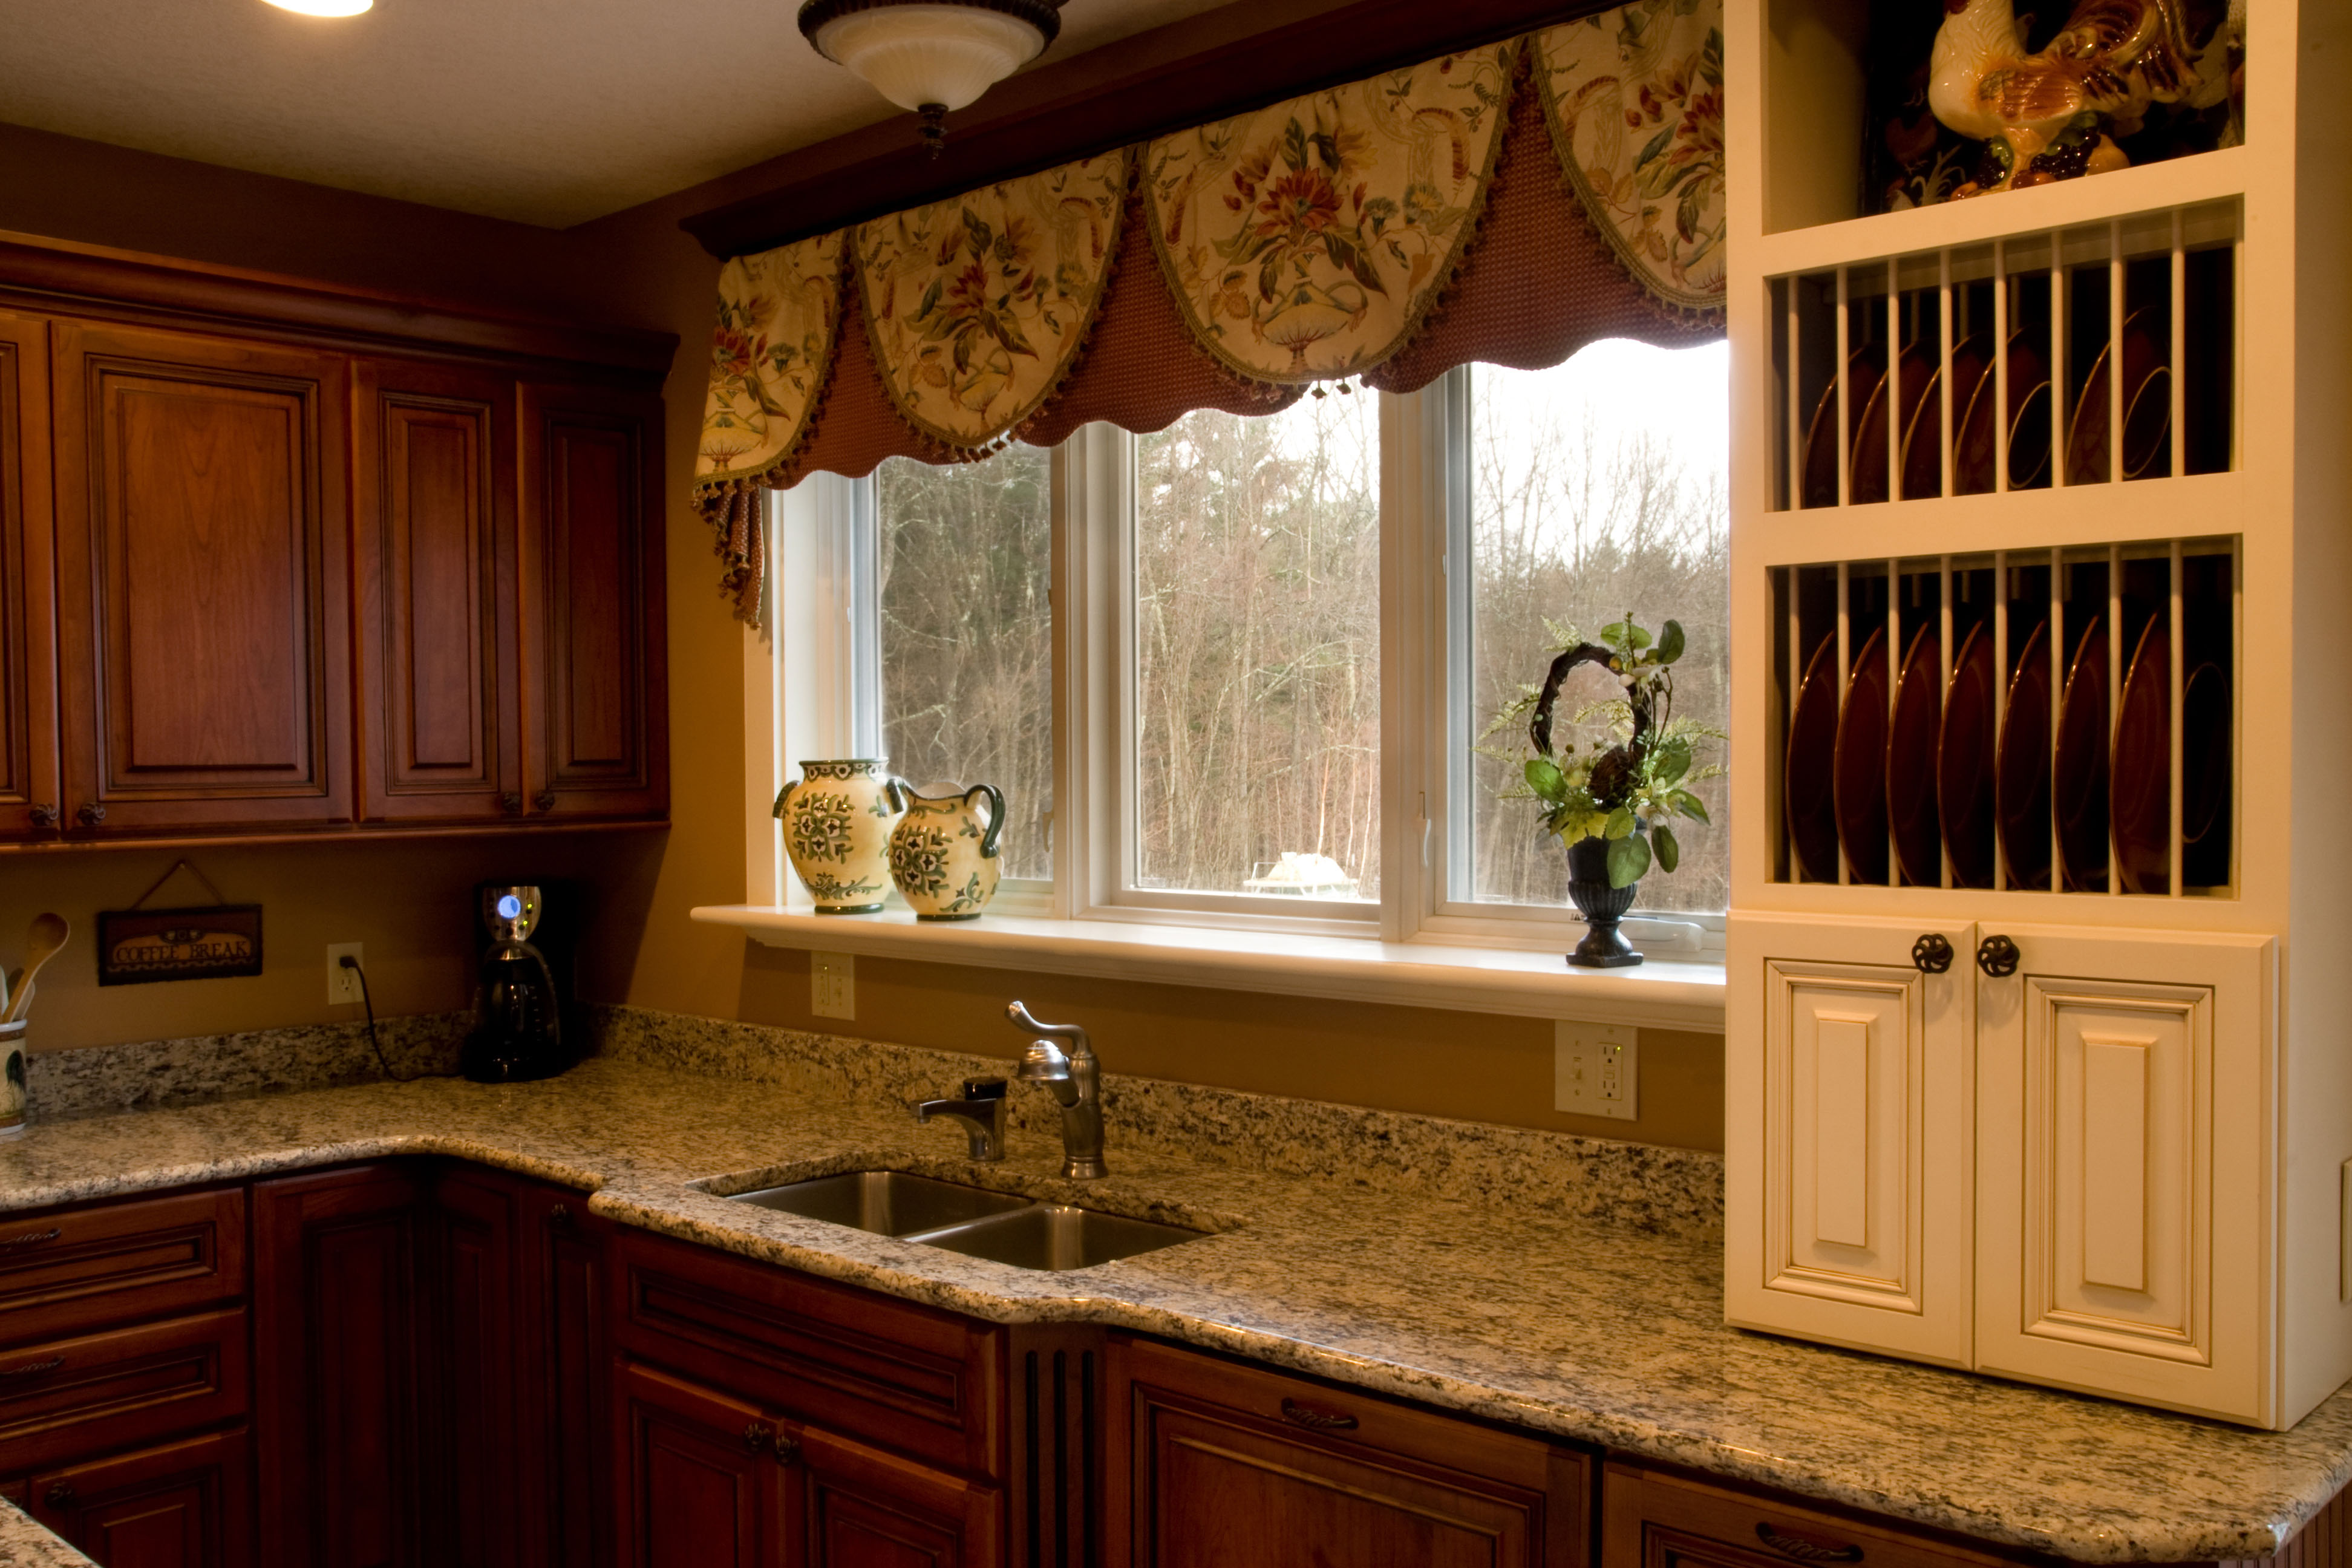 curtains kitchen window ideas photo 6 - Ideas For Kitchen Curtains